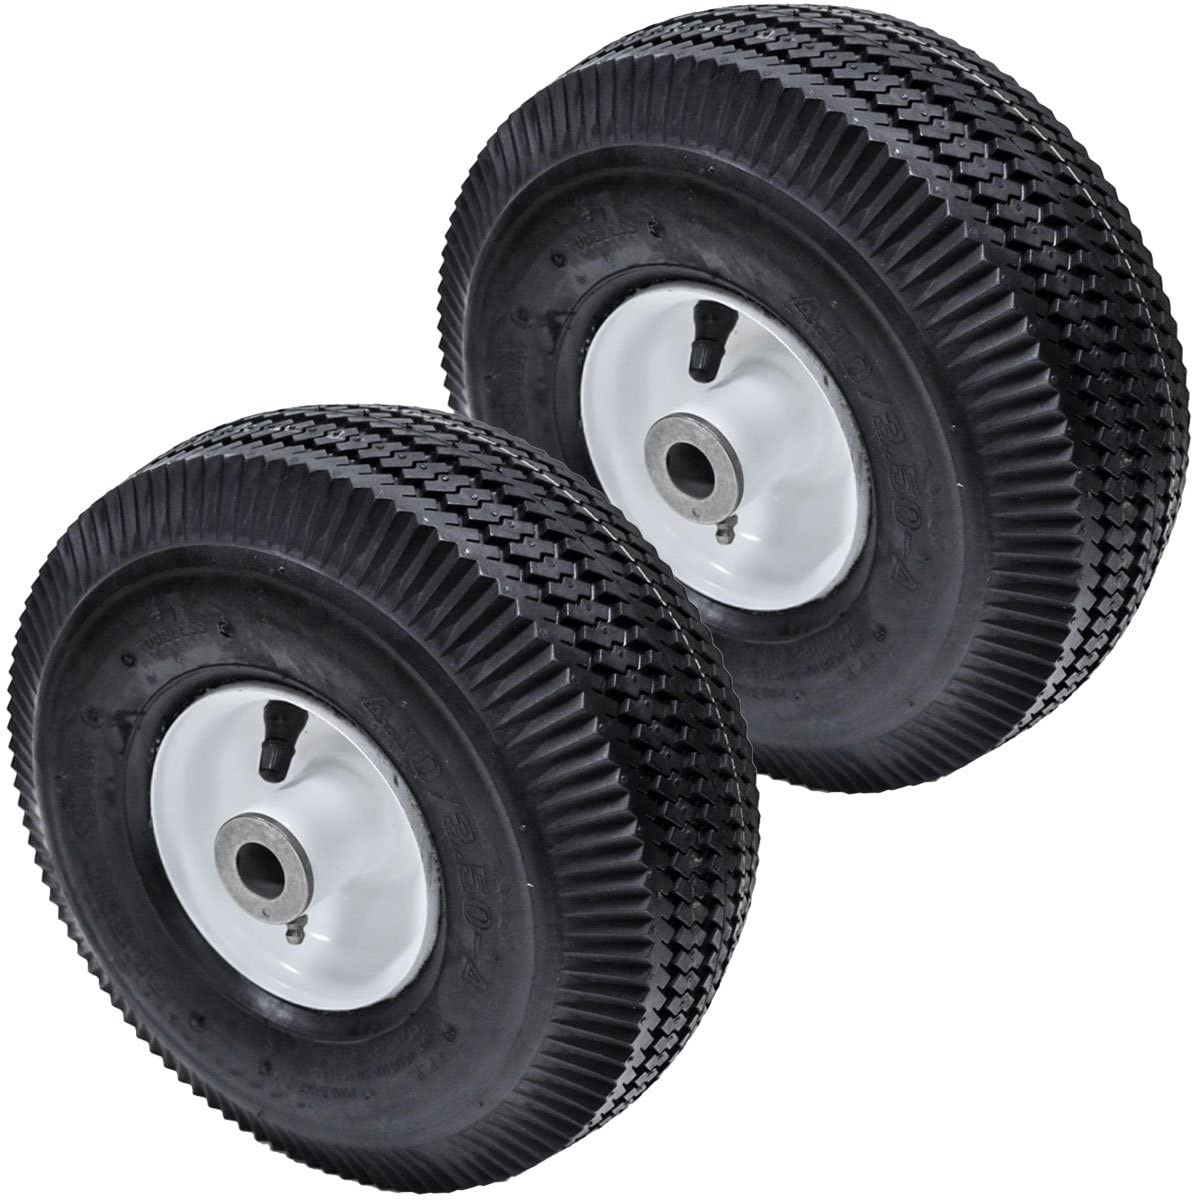 2PK Flat Free Front Wheel Mail order cheap Tire for Ranking TOP11 4.10 Z 3.50- Time Cutter Toro